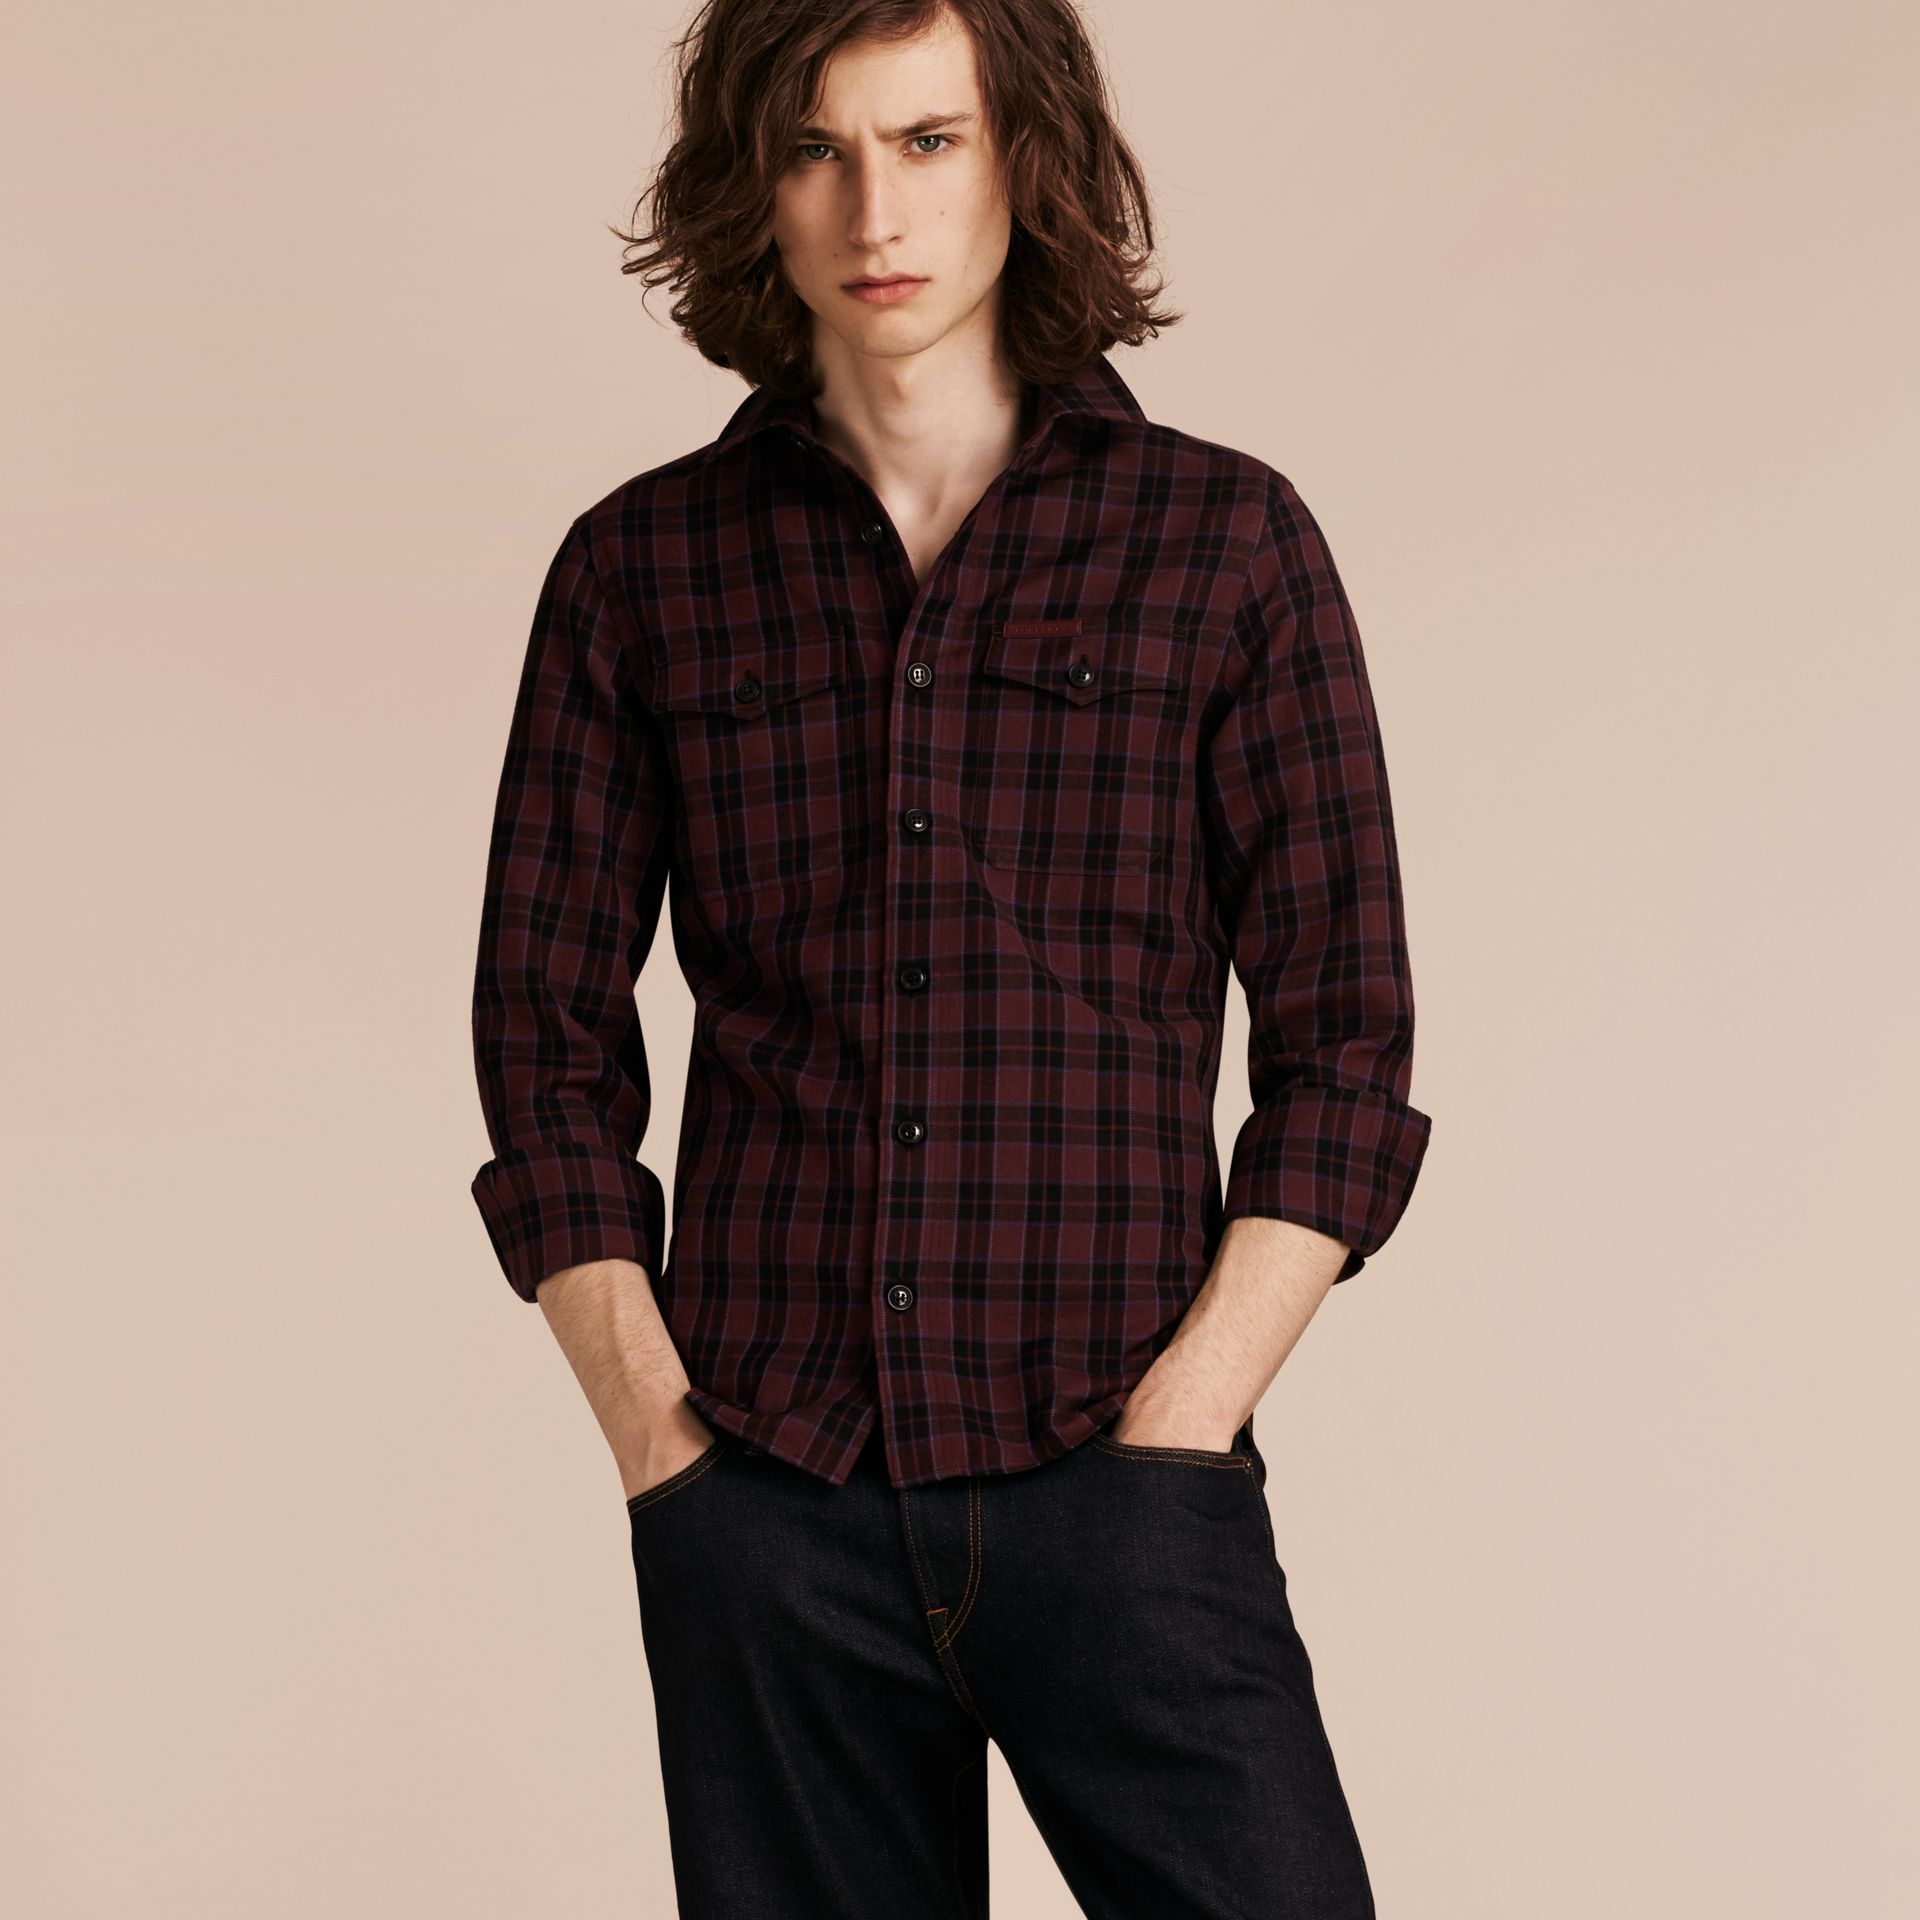 Burgundy red Black Watch Check Wool Blend Shirt Burgundy Red - gallery image 6